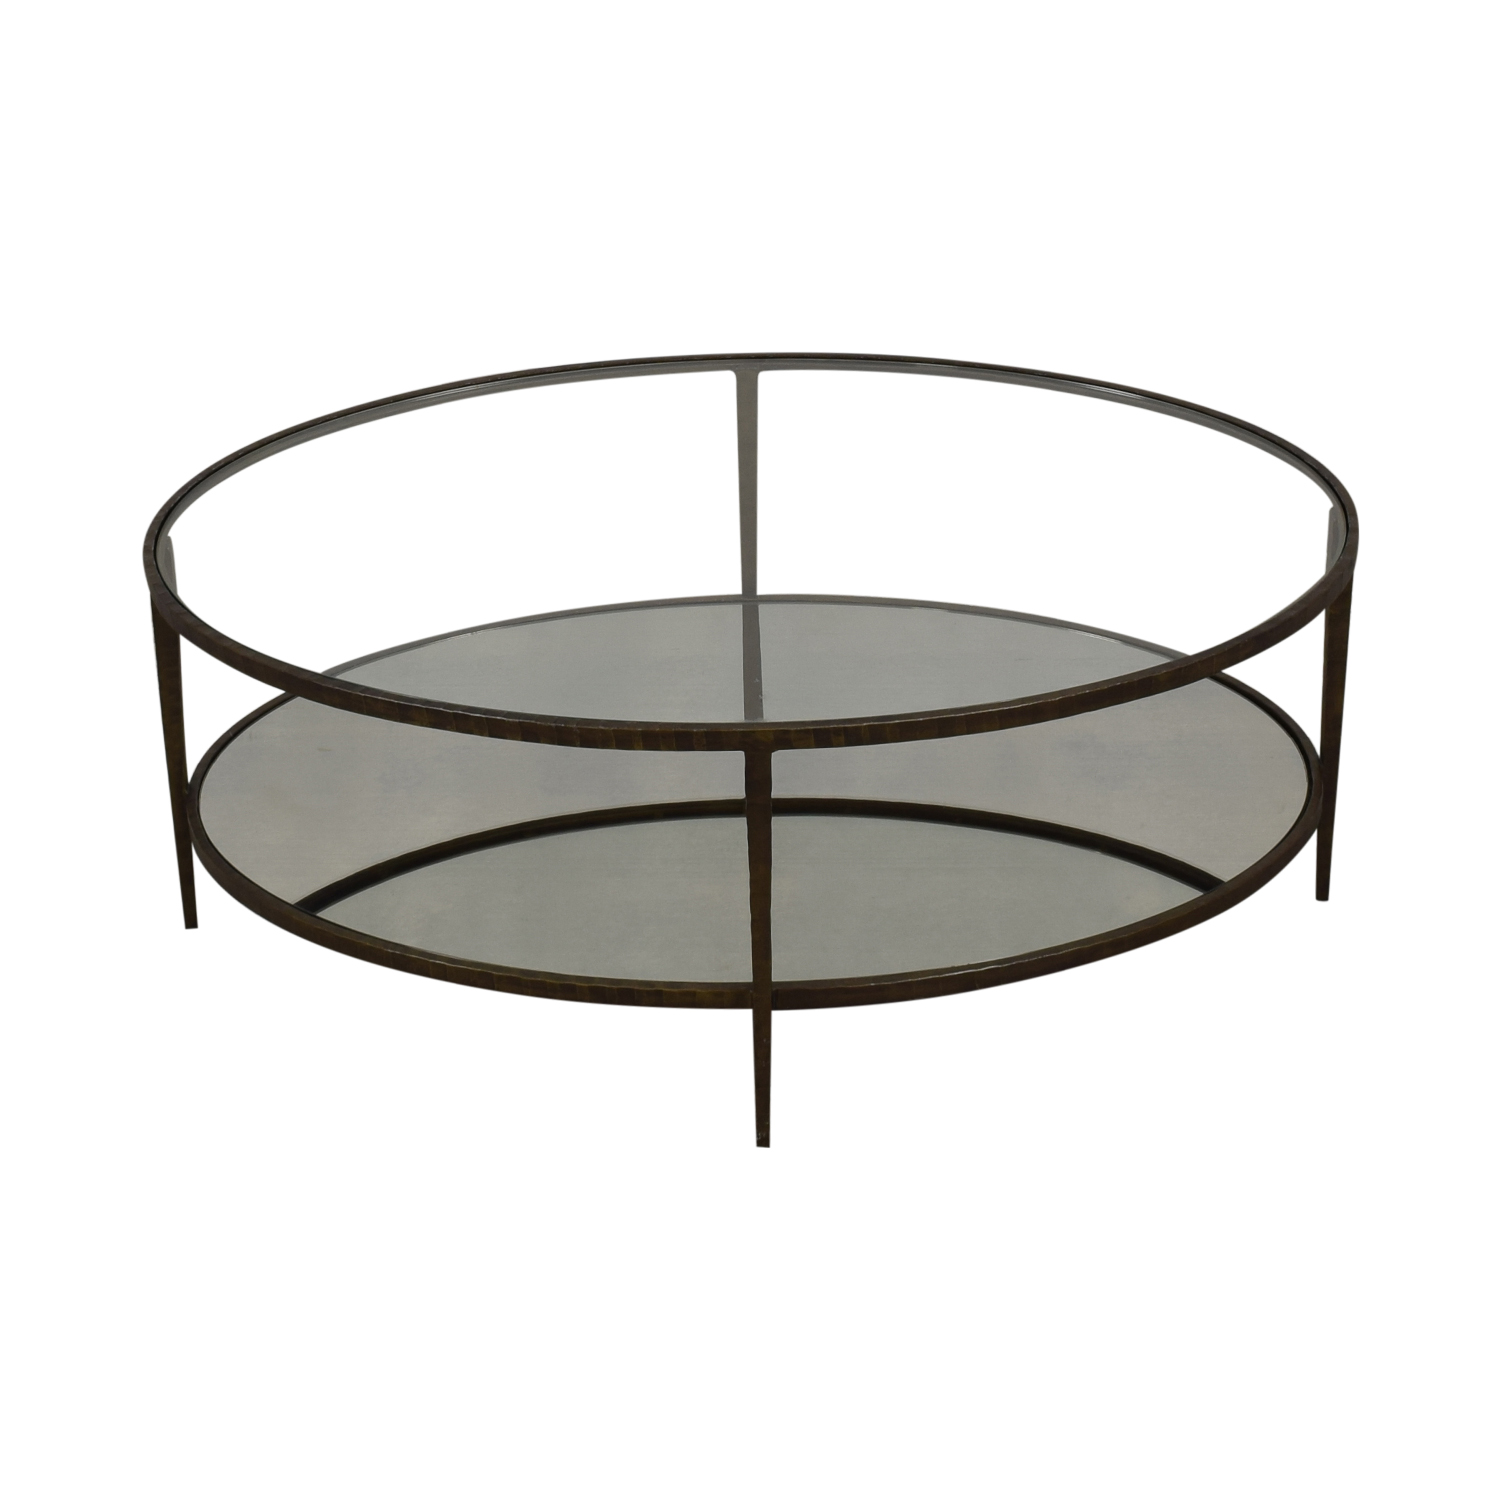 Crate & Barrel Crate & Barrel Clairemont Oval Coffee Table ct